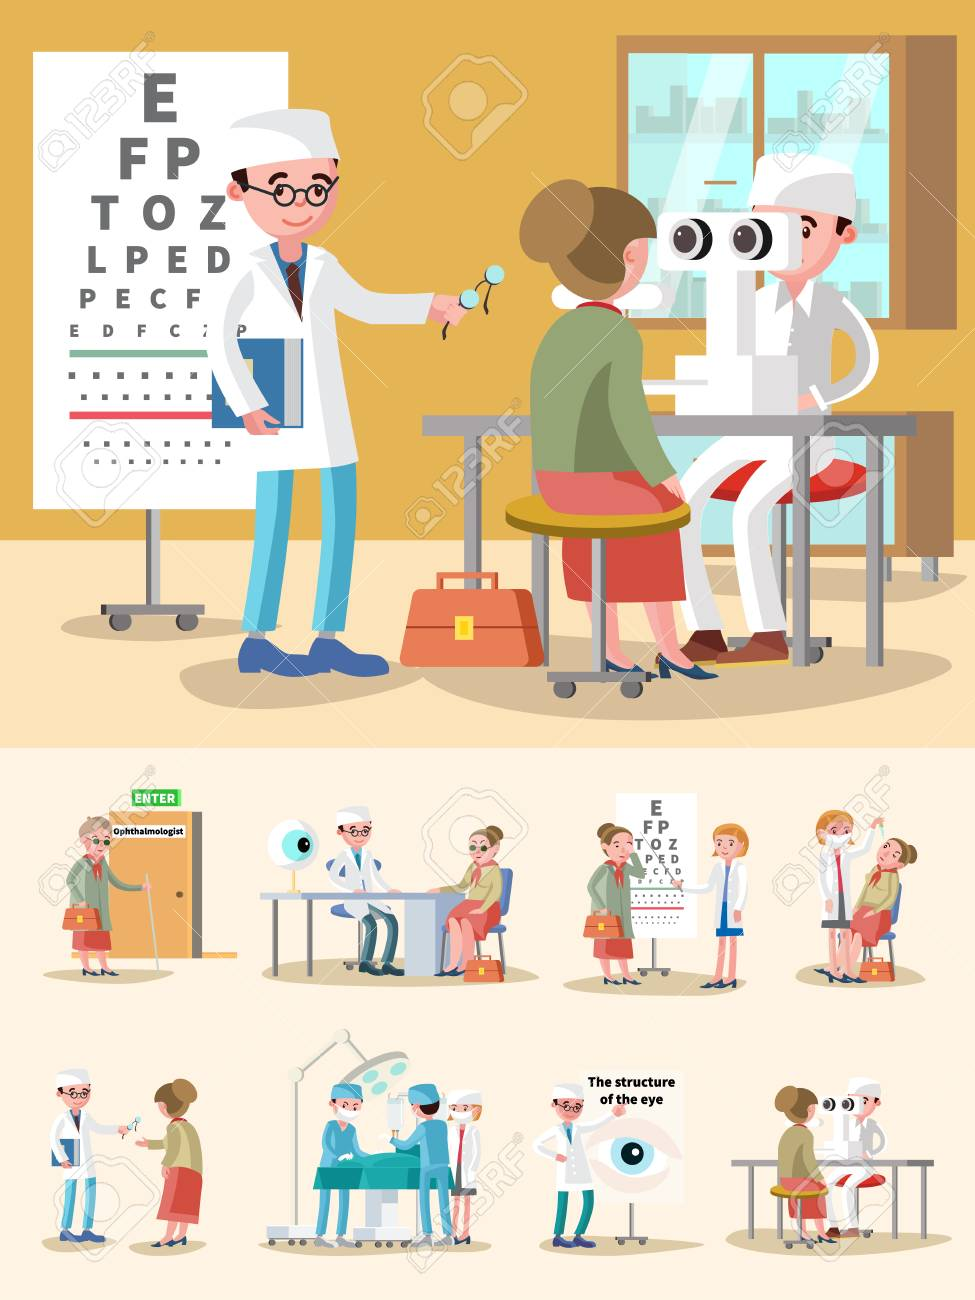 Medical treatment ophthalmology composition with consultation eye signt test diagnostic optical correction surgery procedures vector illustration - 74536651